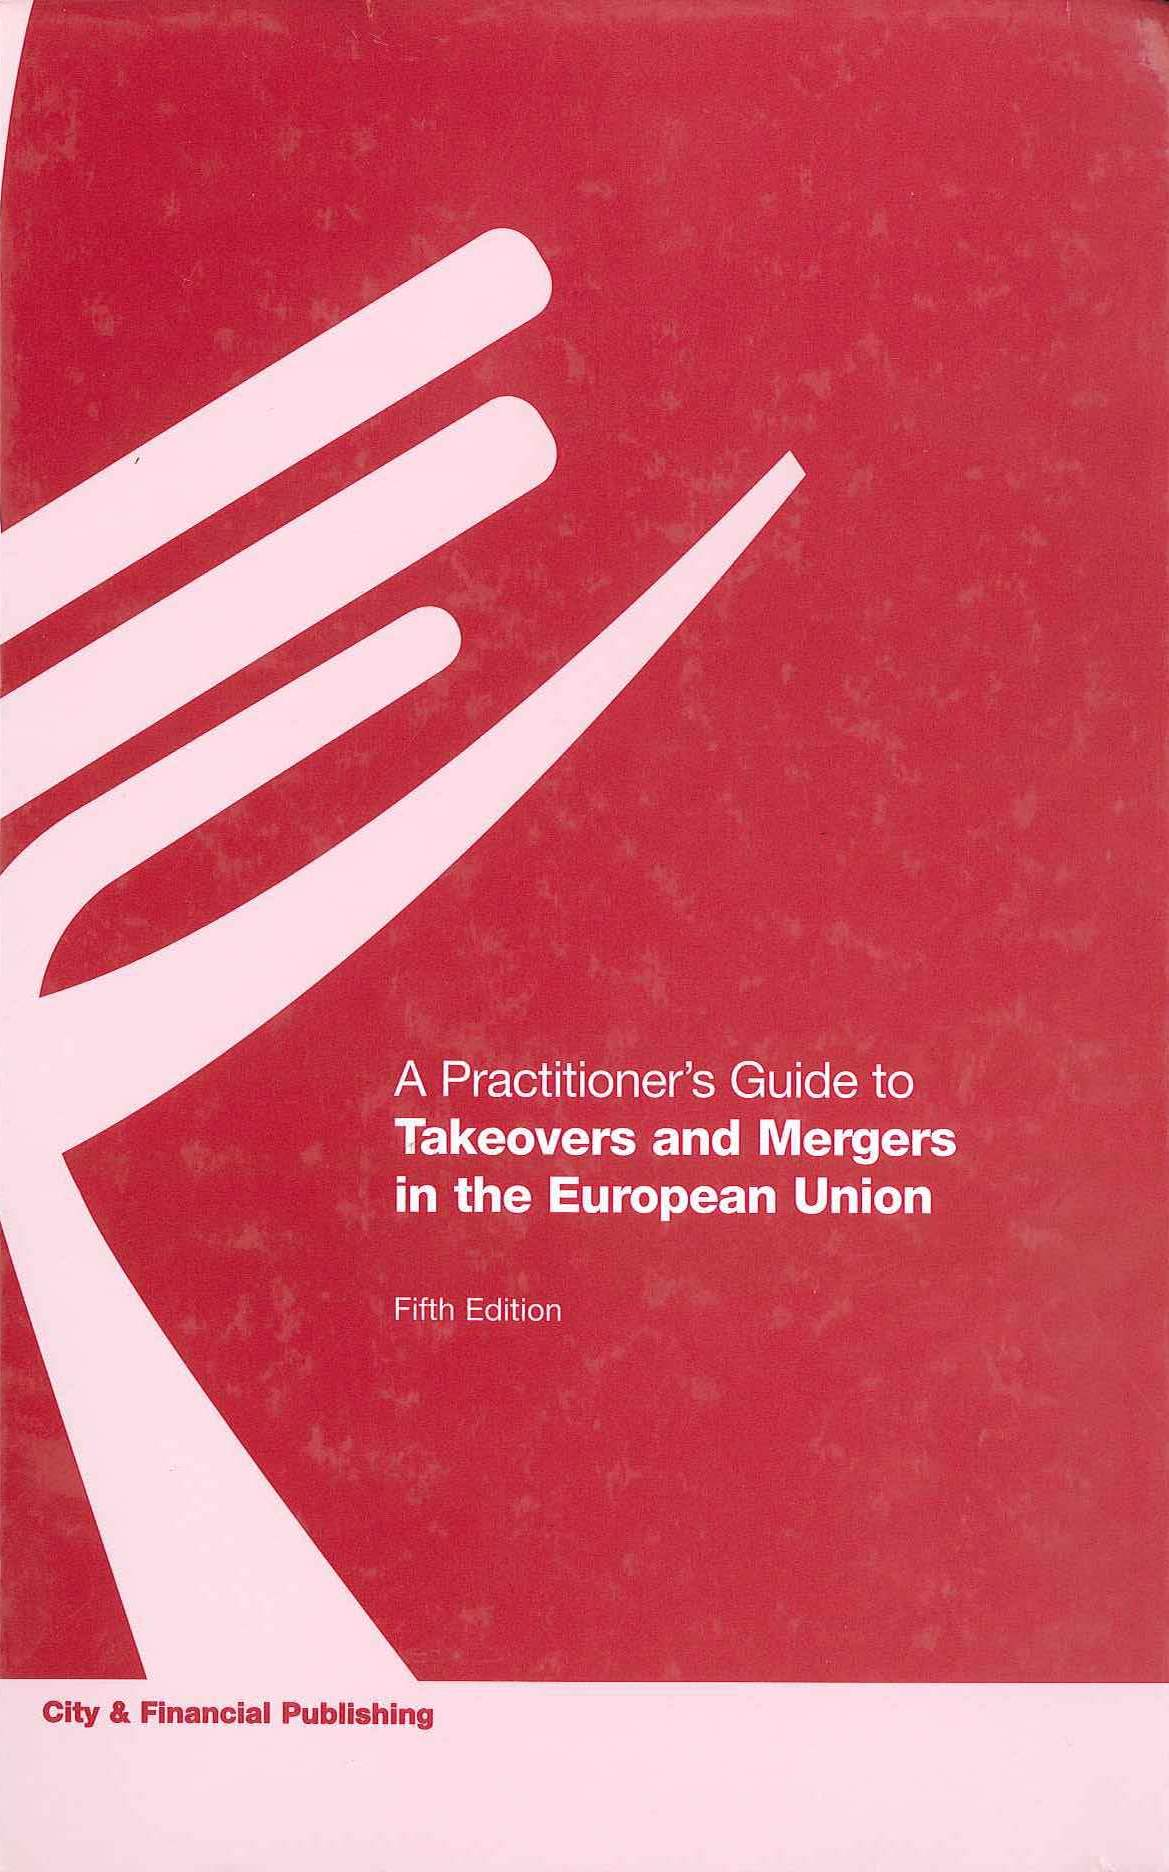 a-practitioners-guide-to-takeovers-and-mergers-in-the-european-union